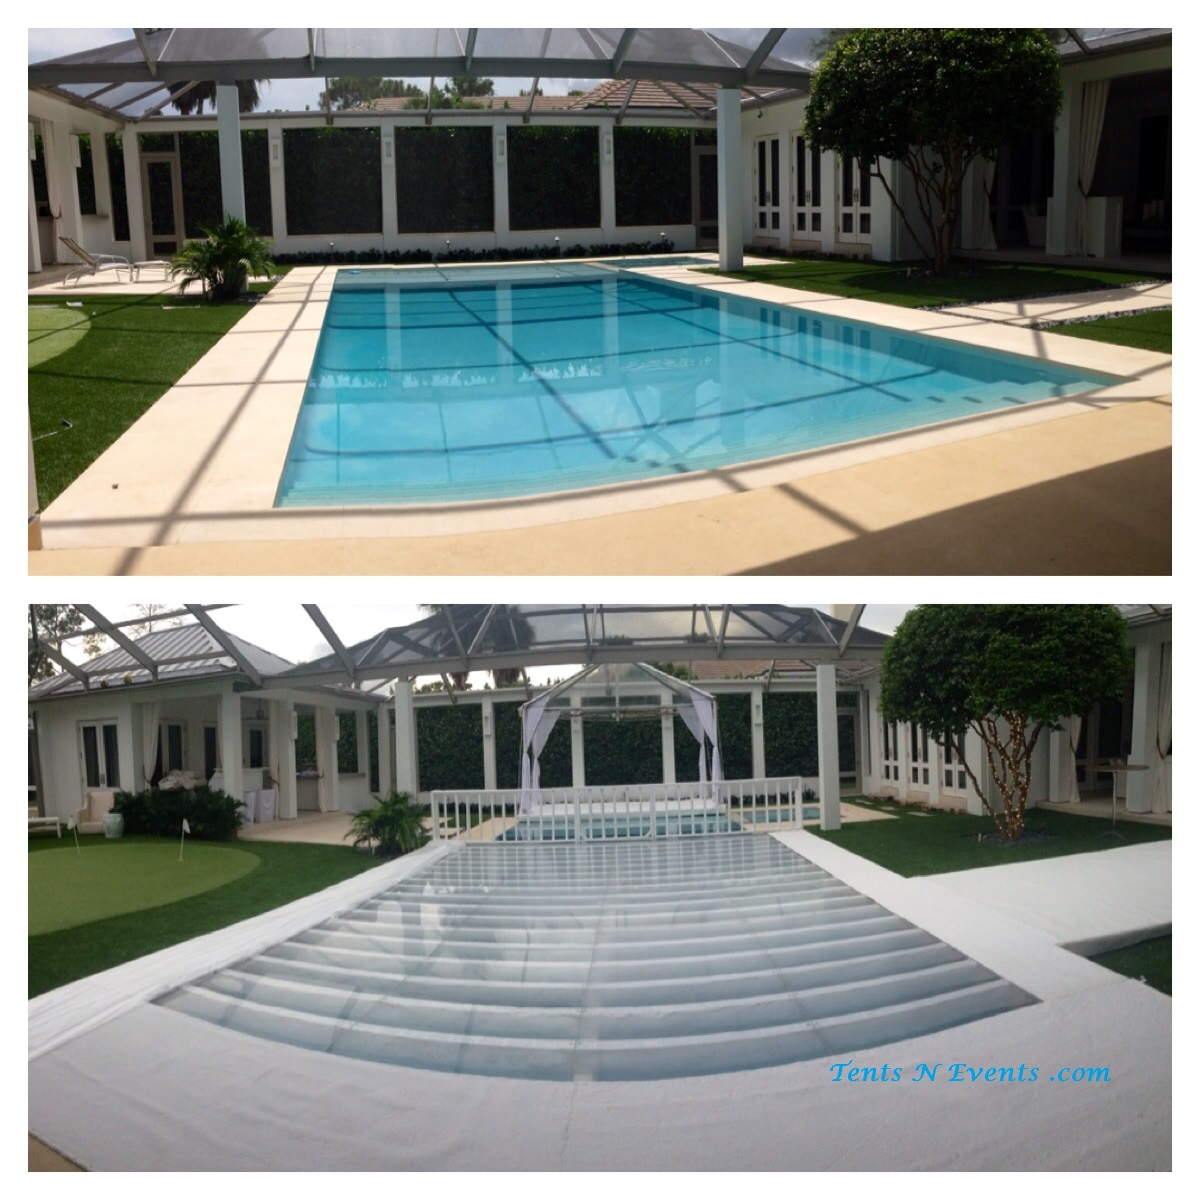 BEFORE & AFTER POOL COVER